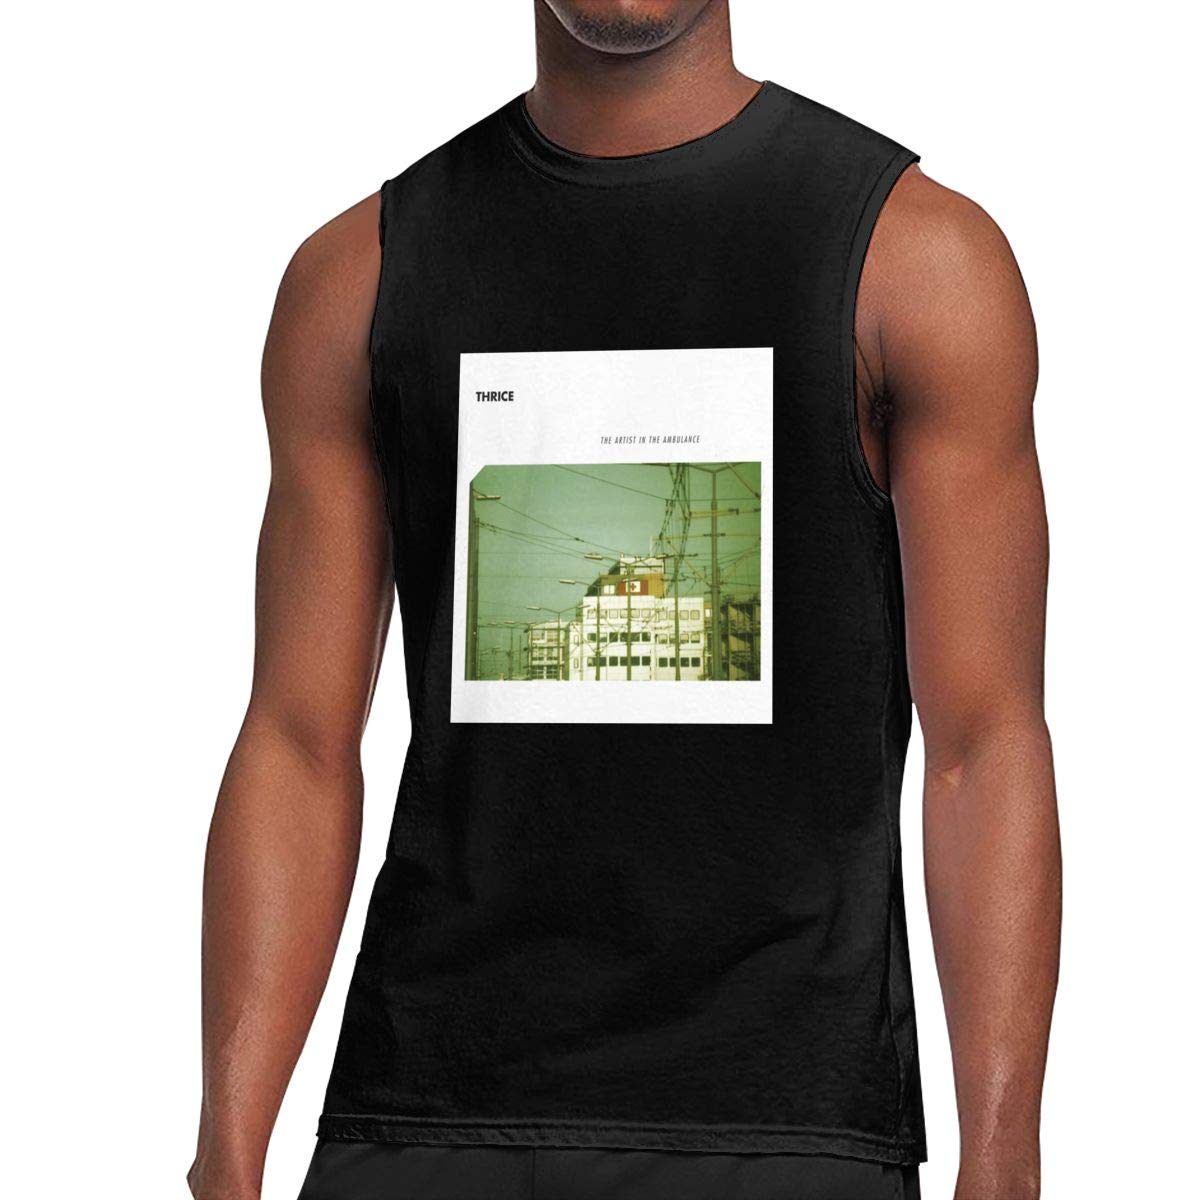 Seuriamin Thrice The Artist In The Ambulance S Funny Athletic Sleeveless Muscle Short Slee